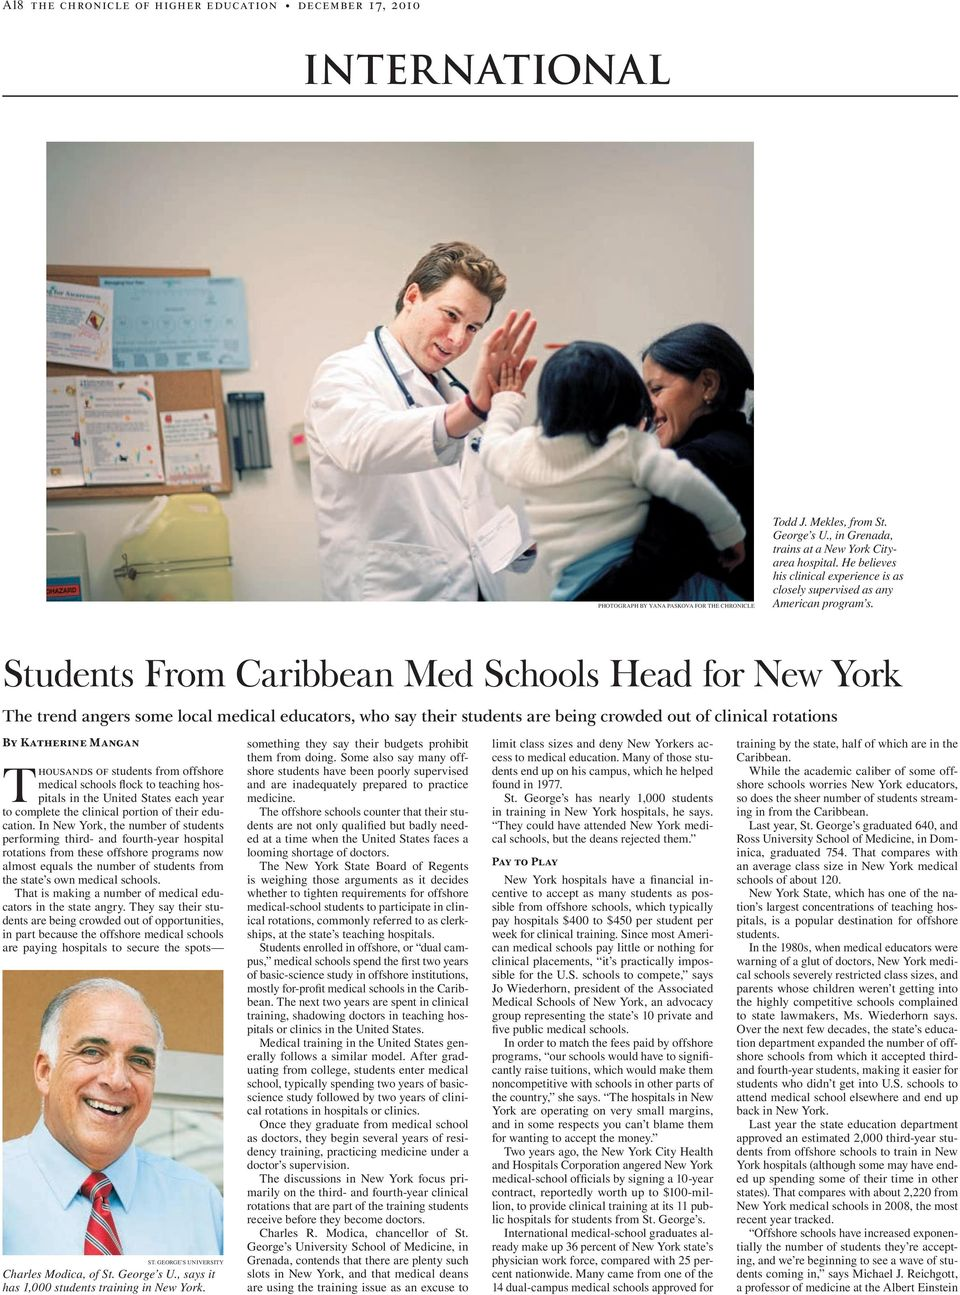 Students From Caribbean Med Schools Head for New York The trend angers some local medical educators, who say their students are being crowded out of clinical rotations By Katherine Mangan Thousands